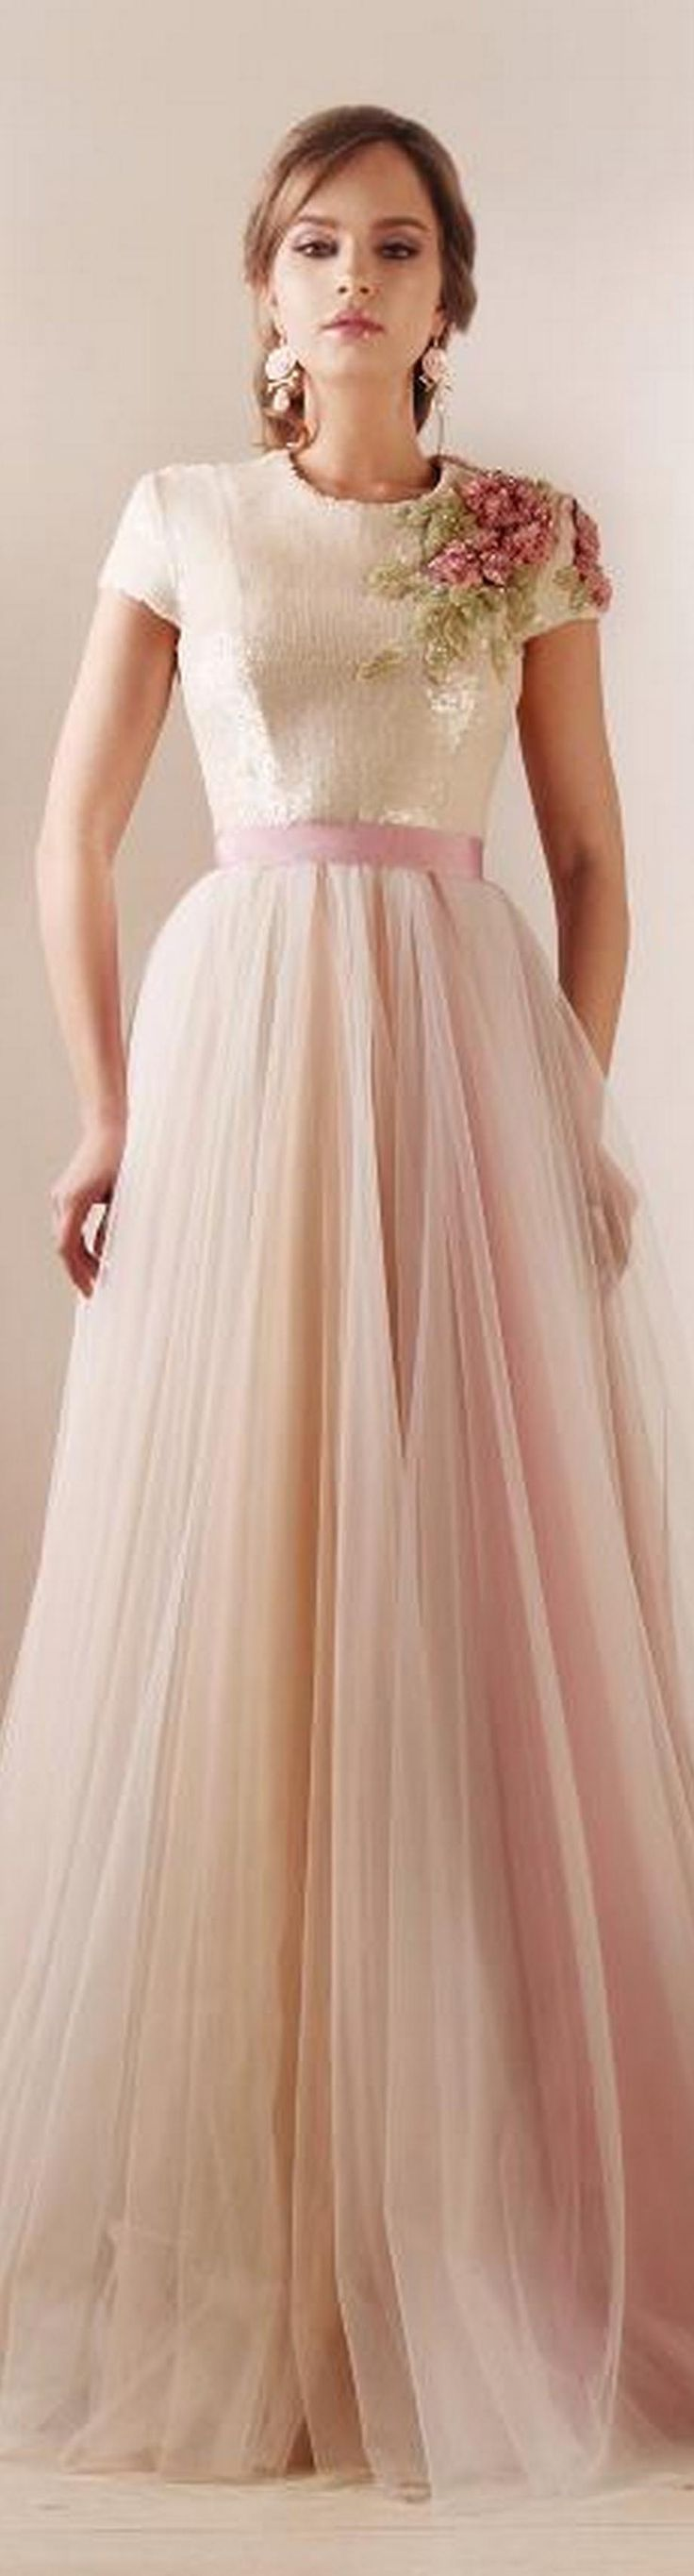 The most amazing bridesmaid gown ive seen :) Rami Kadi Dress♥✤ | Keep the Smiling | BeStayBeautiful